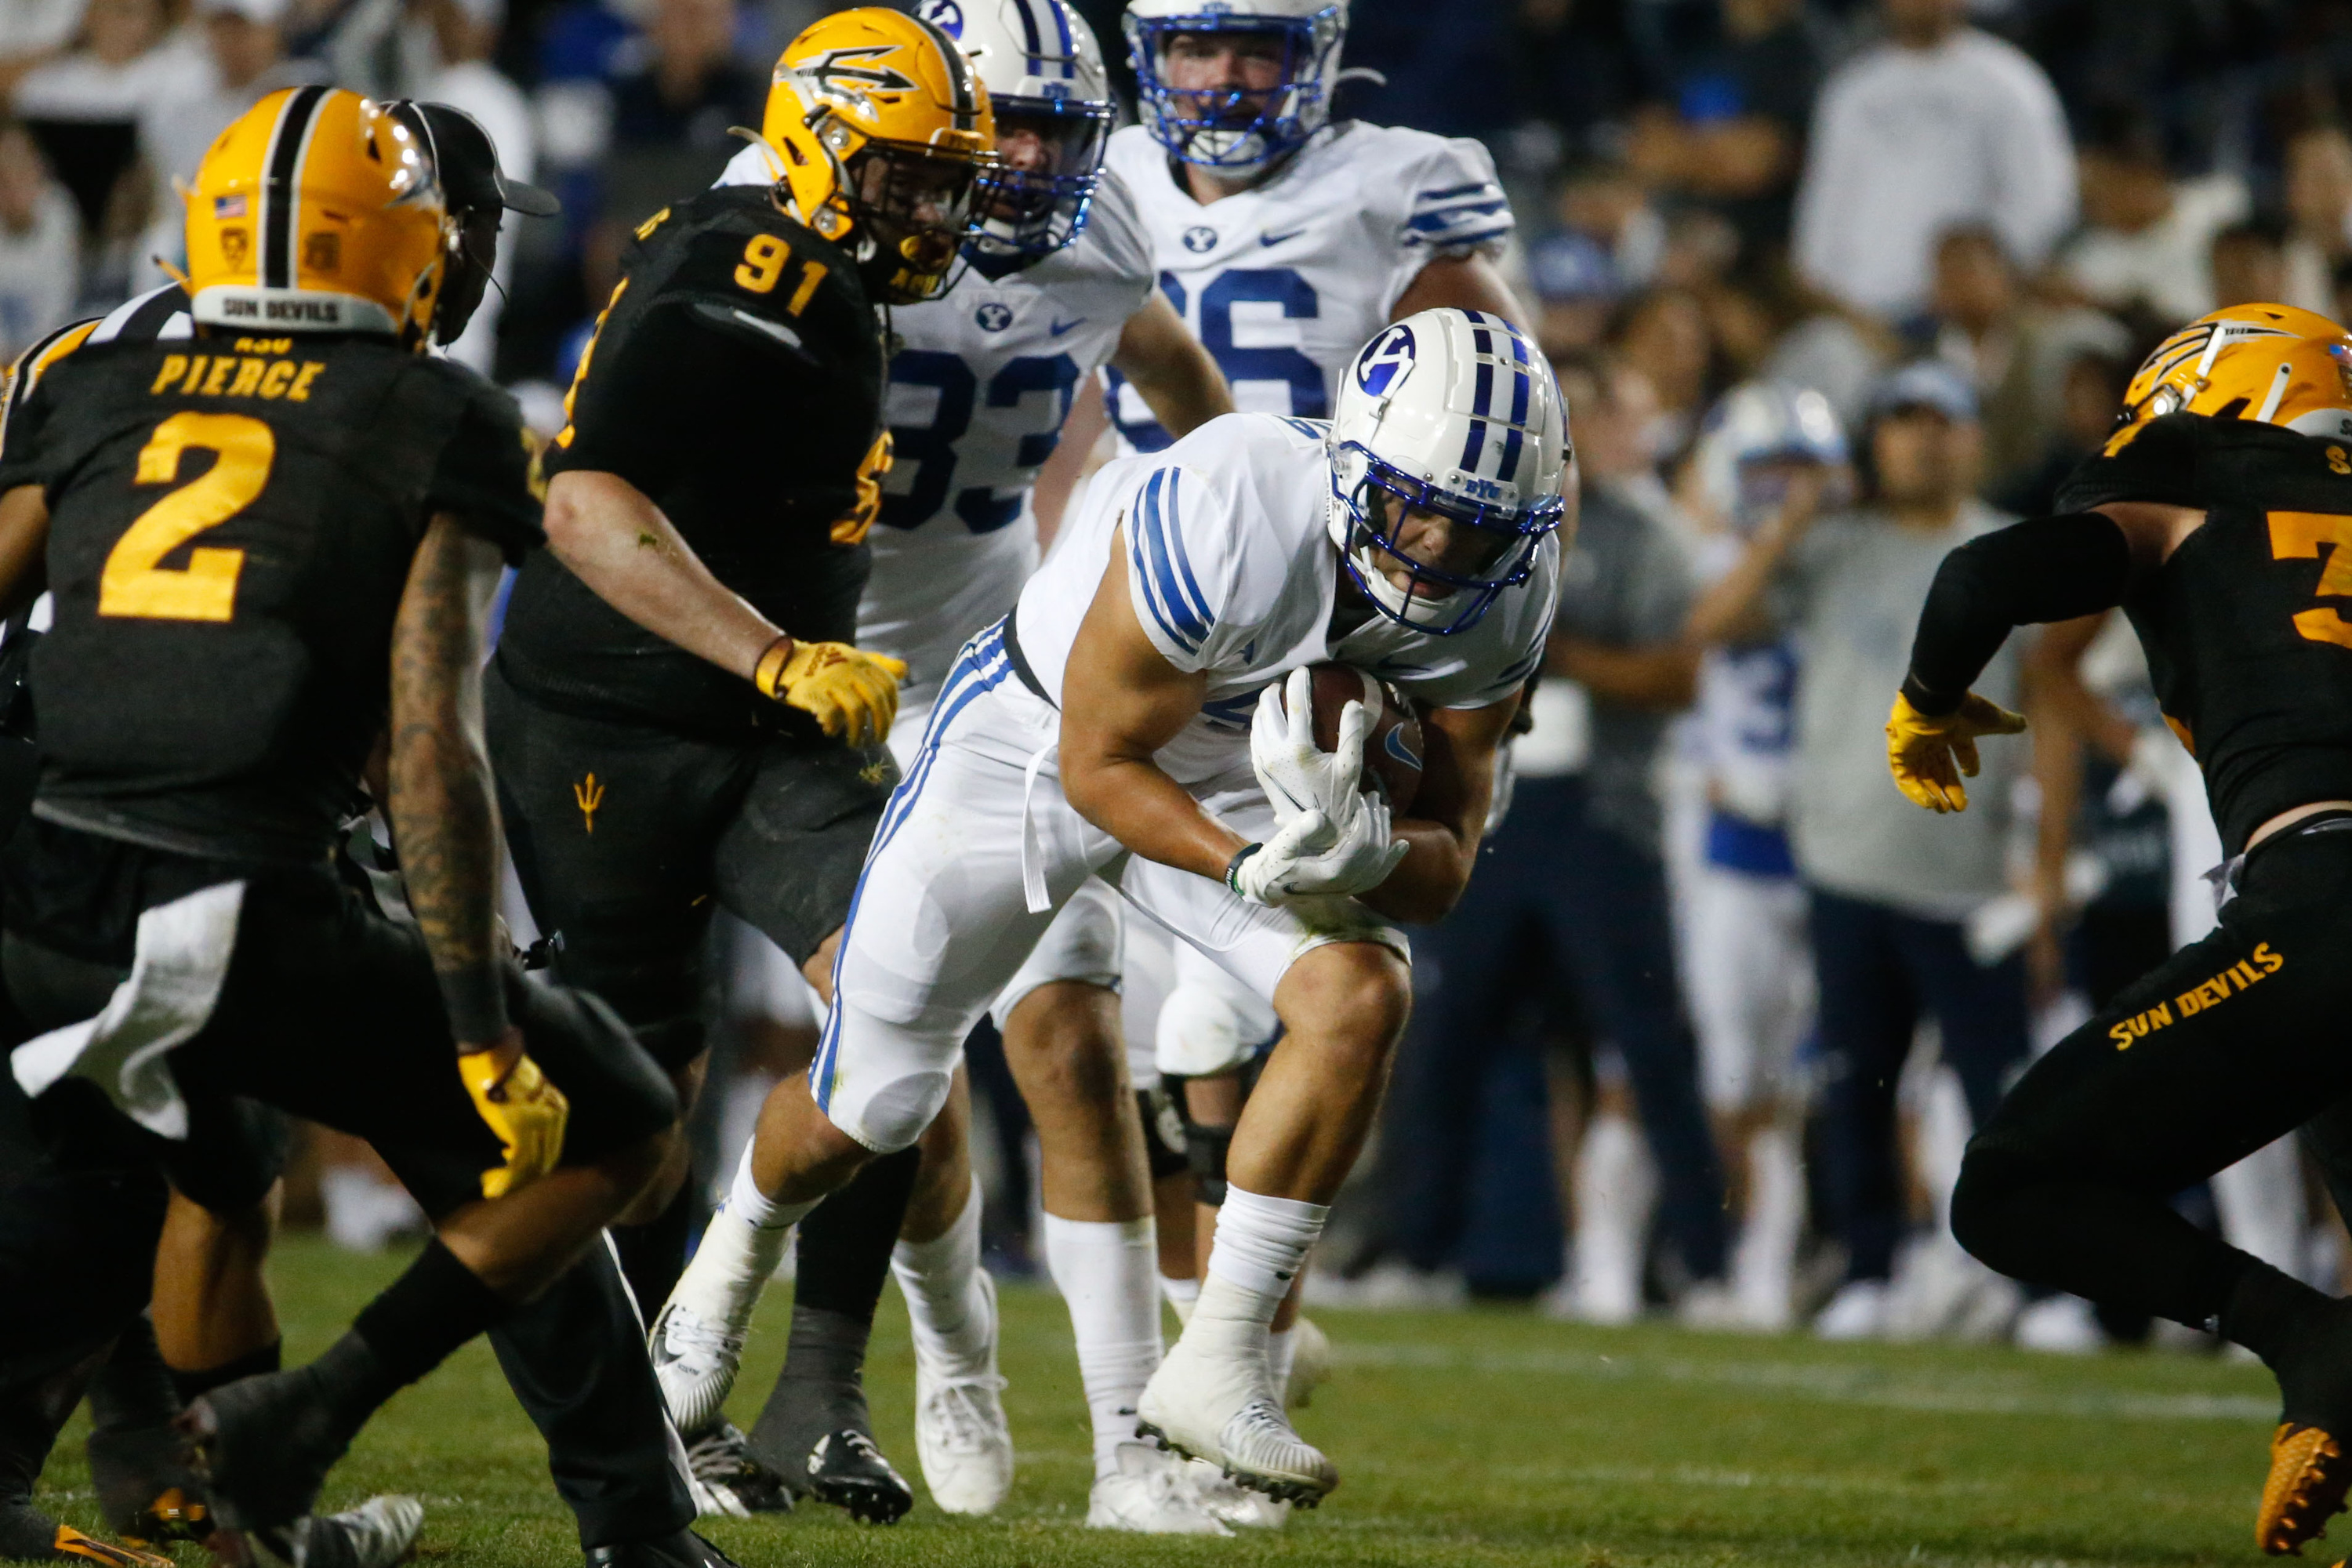 Brigham Young running back Lopini Katoa, center, runs under pressure during an NCAA college football game against Arizona State.